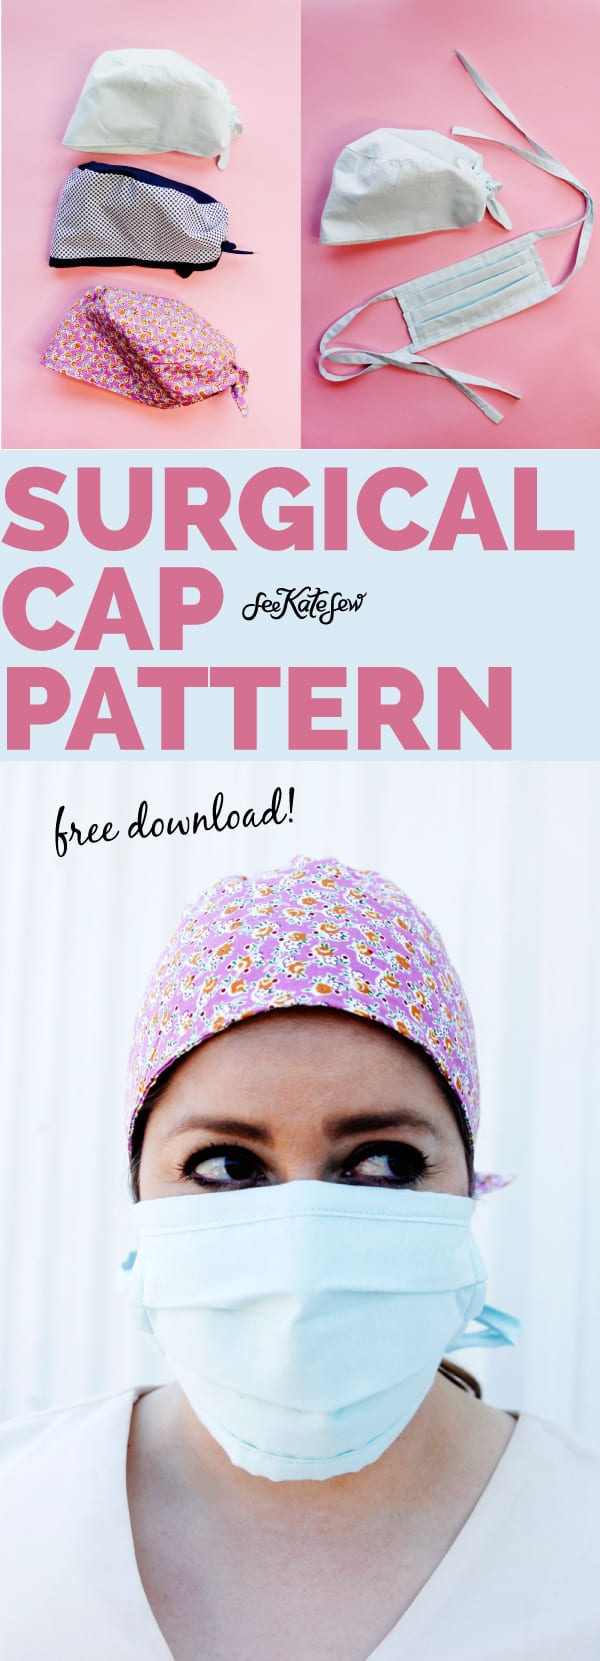 Surgical Cap Sewing Pattern FREE